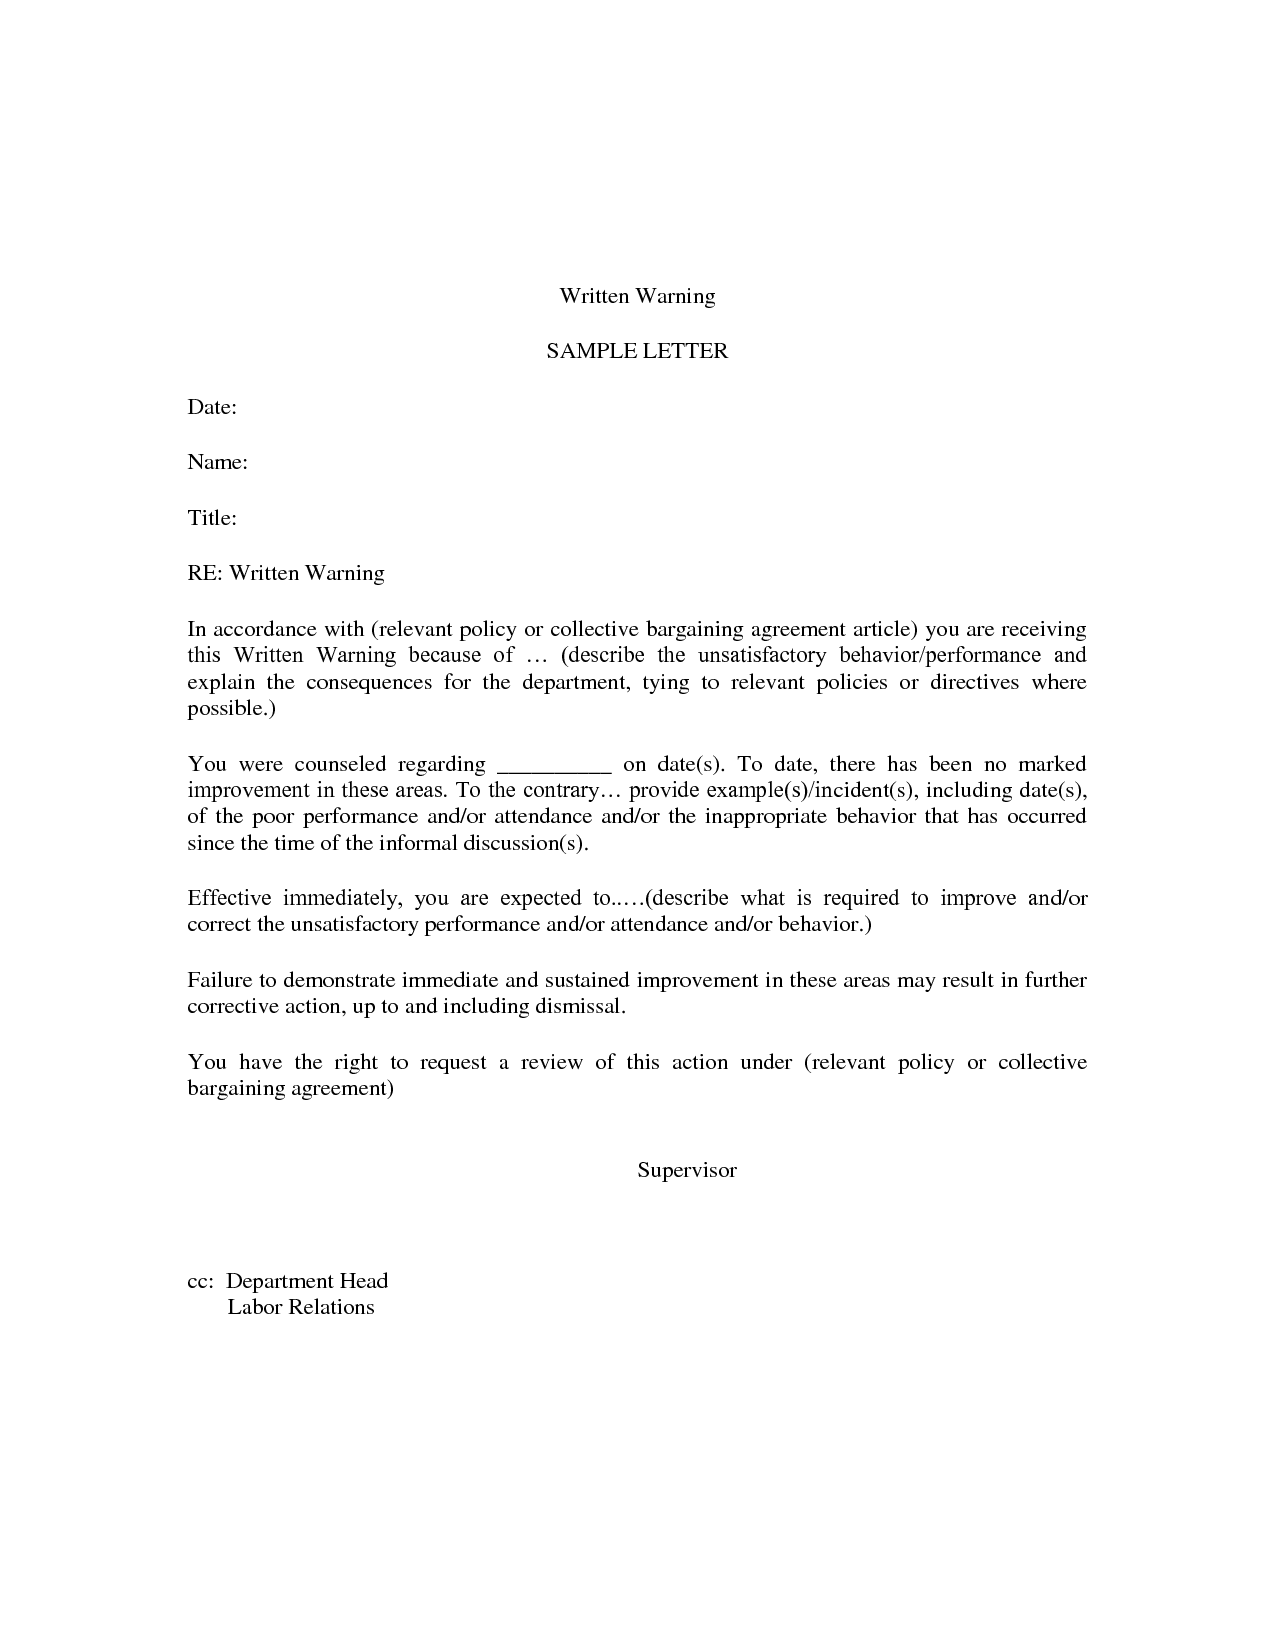 Extension request letter format best of letter format extension time pictures wikihow image titled write a leave of absence letter step leave extension letter format thepizzashop co request letter for vacation leave leave spiritdancerdesigns Images